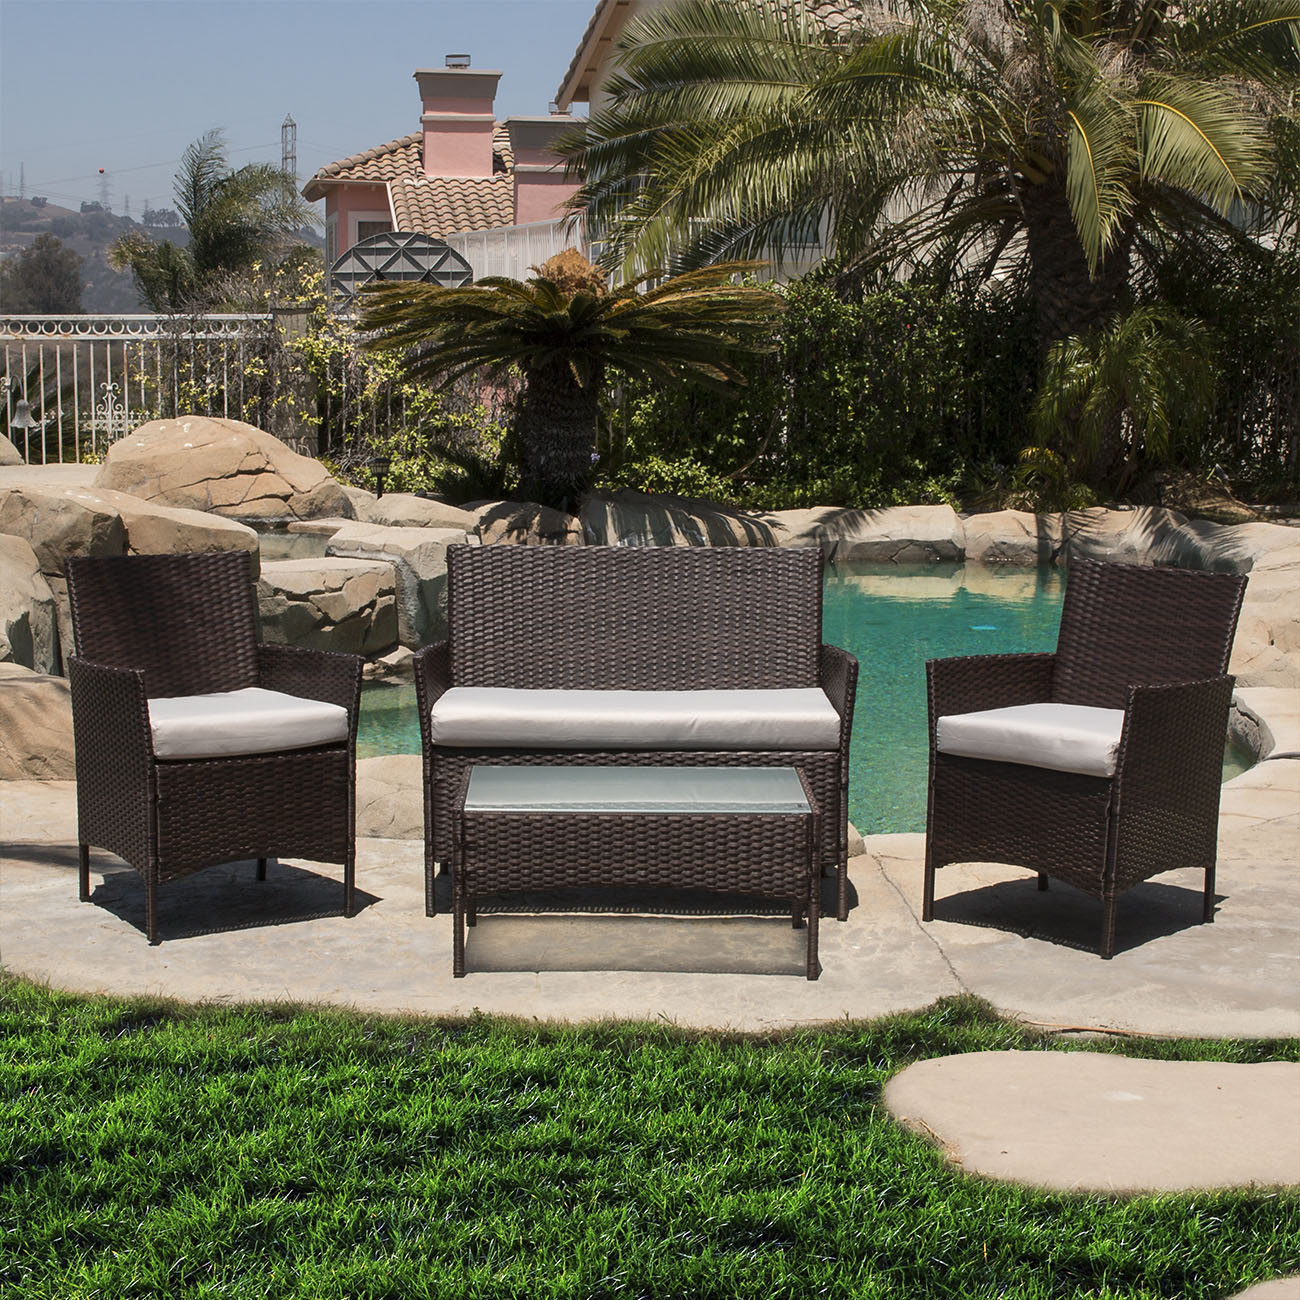 4 pc rattan furniture set outdoor patio garden sectional